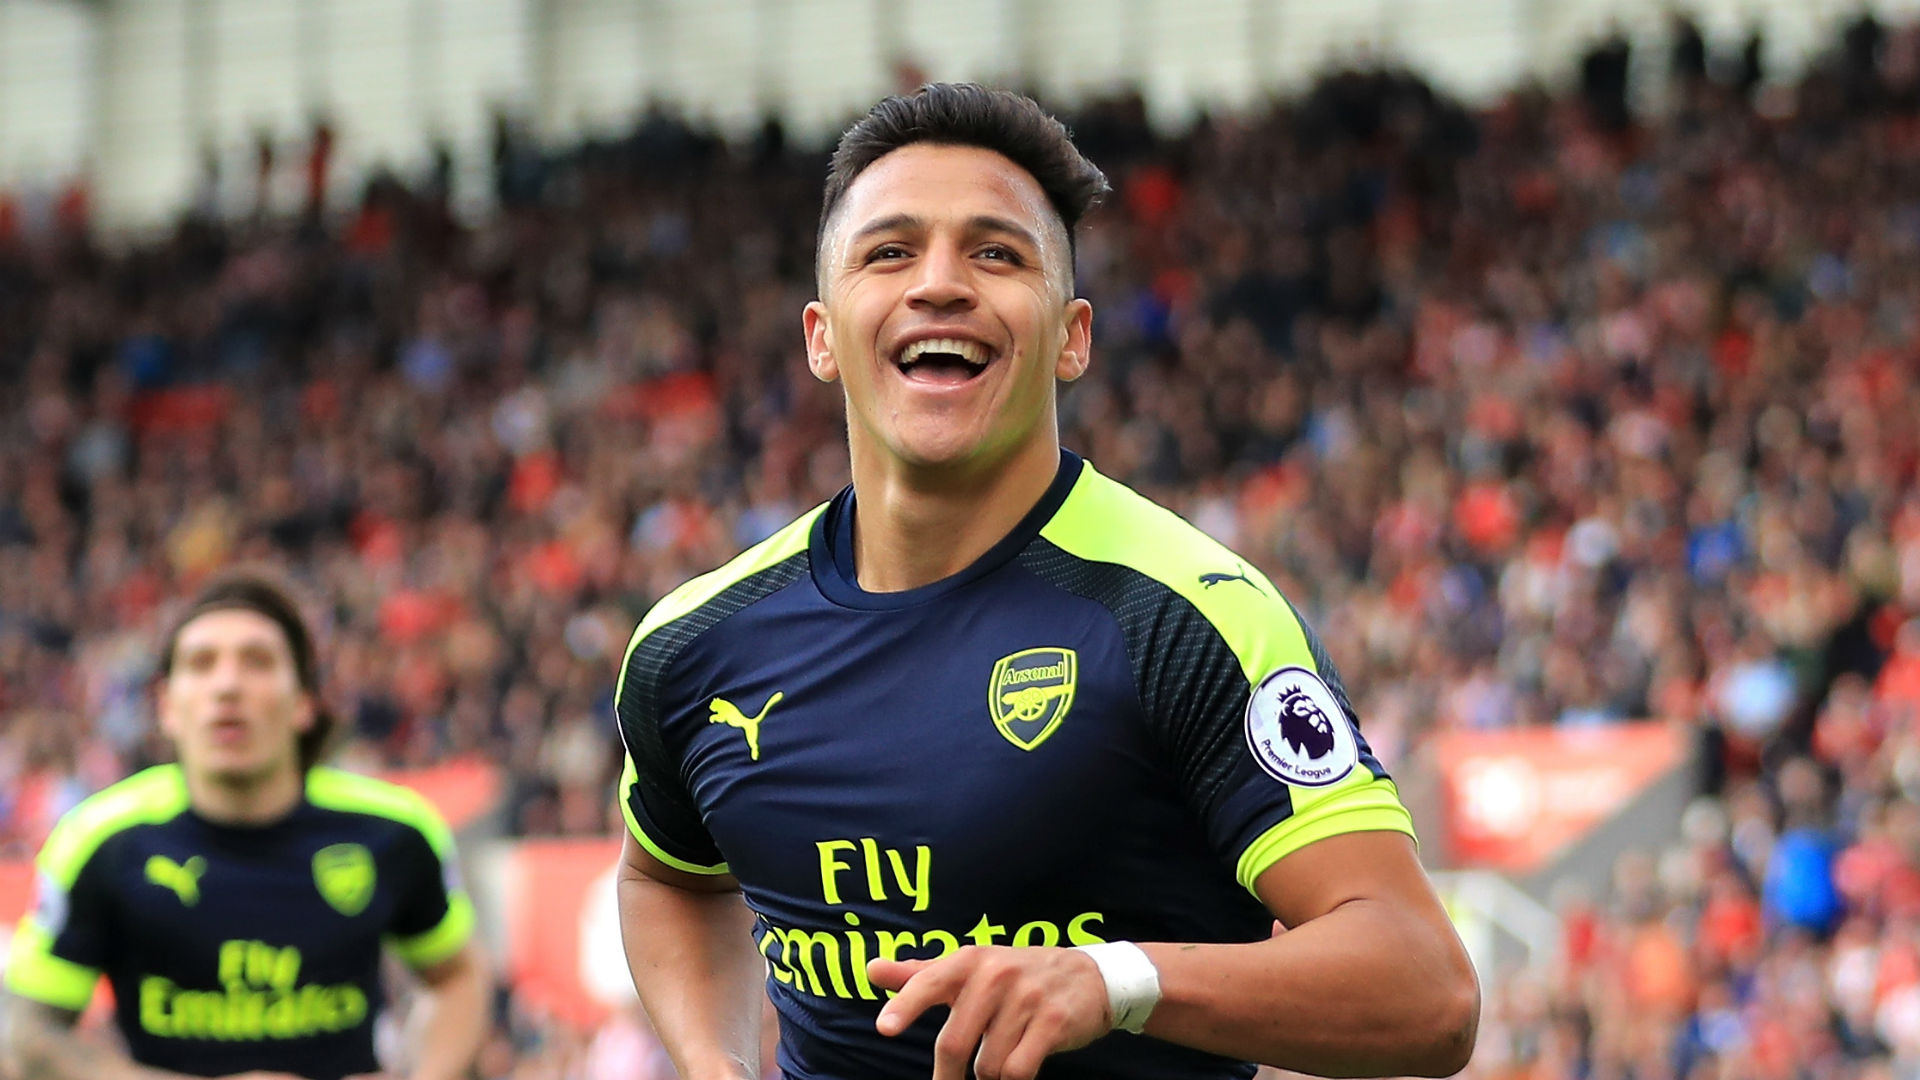 Alexis Sánchez faces fitness test before Arsenal take on Sunderland